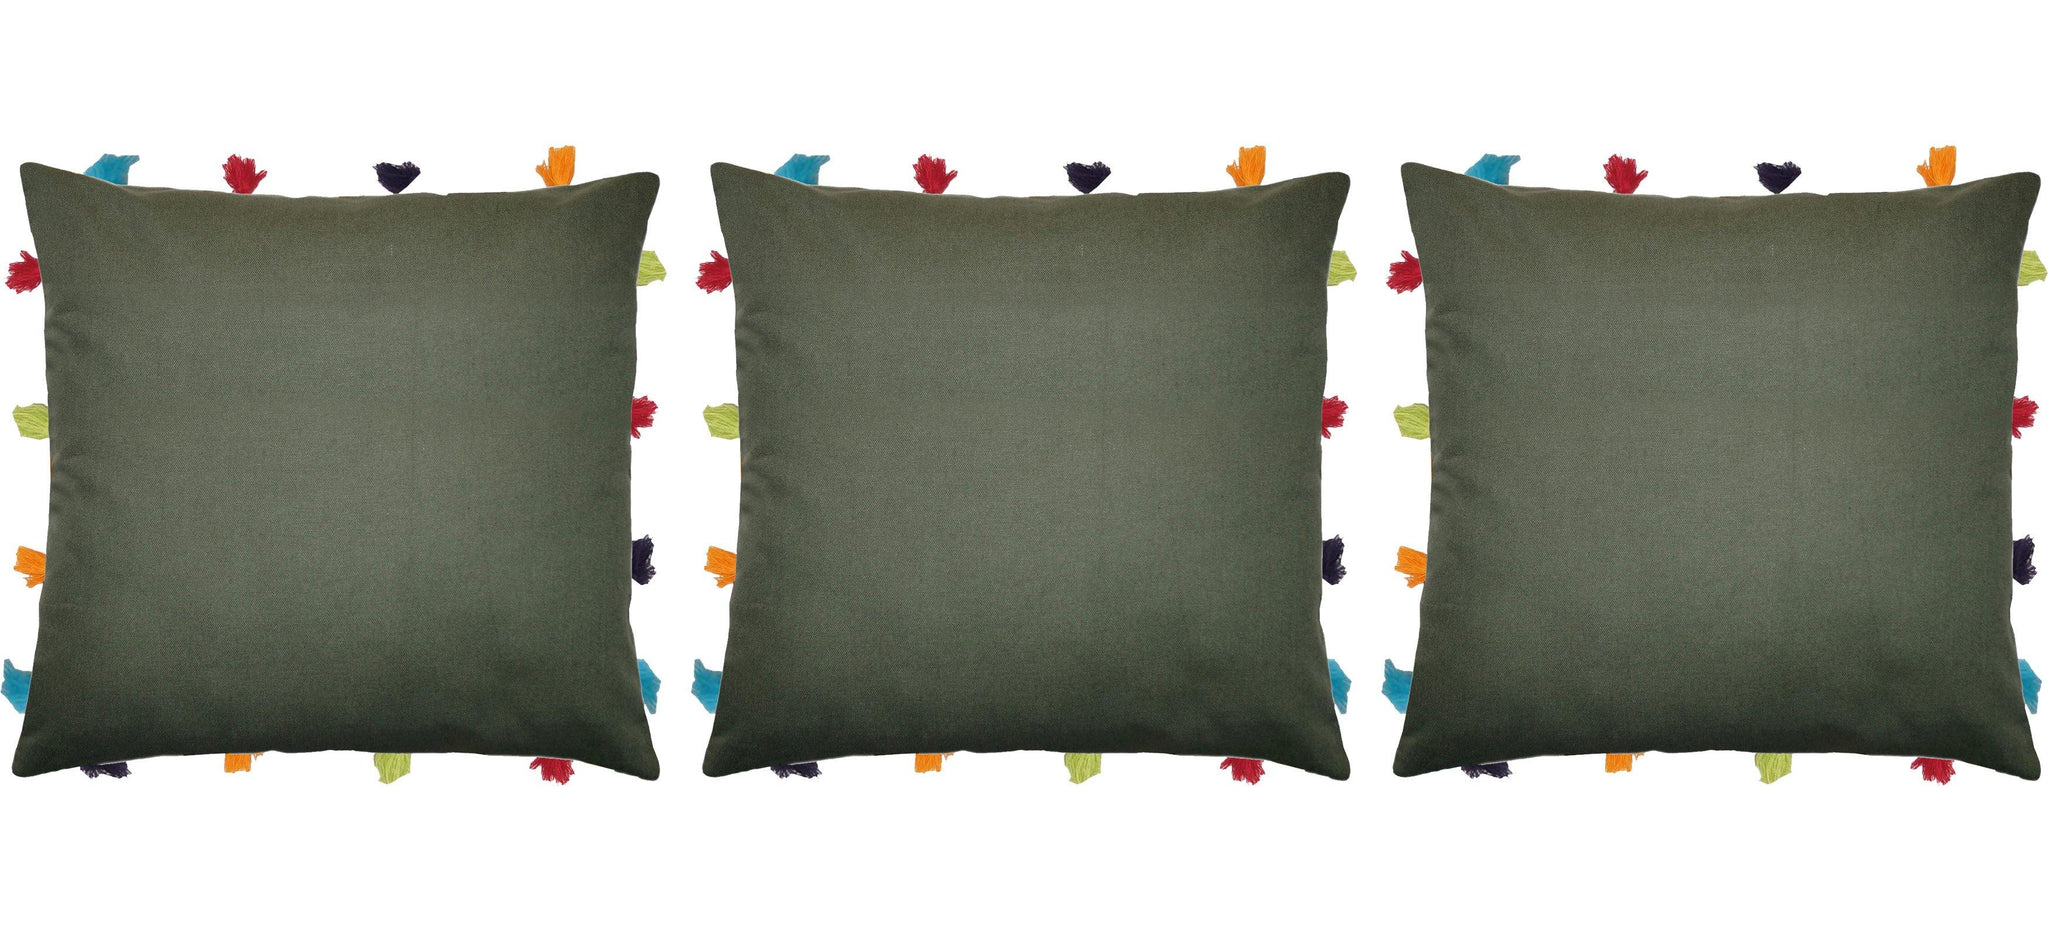 "Lushomes Vineyard Green Cushion Cover with Colorful tassels (3 pcs, 14 x 14"") - Lushomes"